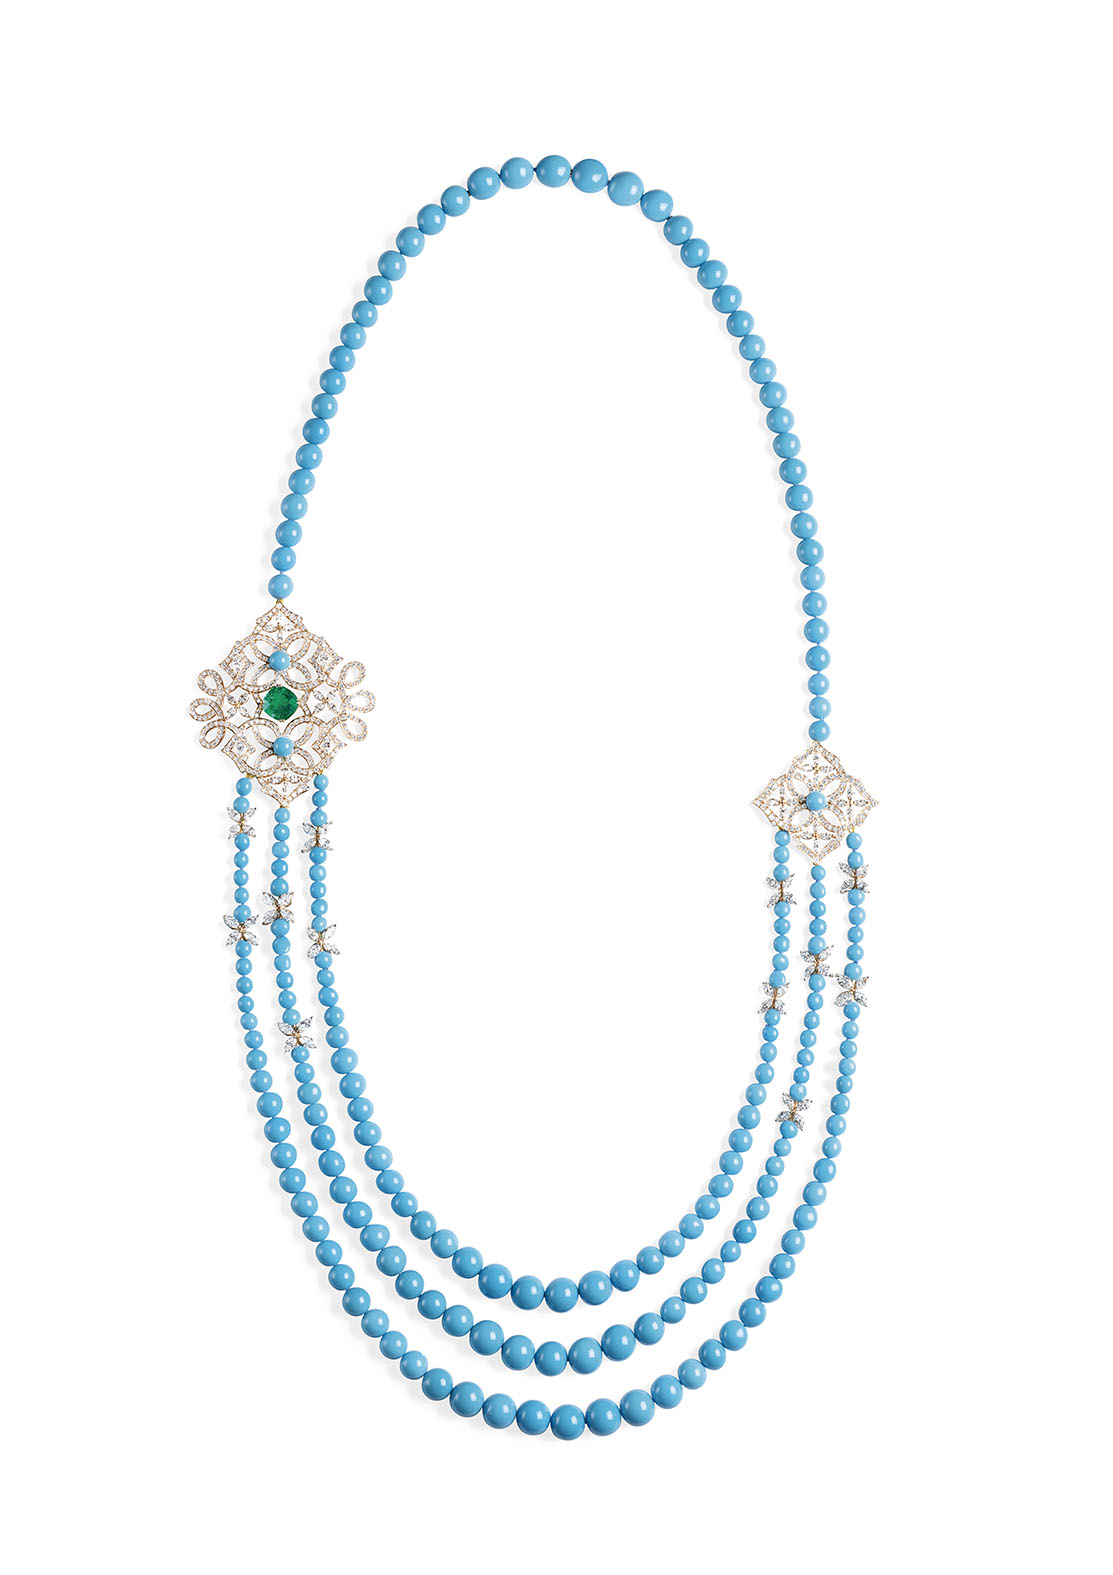 Secrets and Light Collection by Piaget Necklace in 18K pink gold set with 1 cushion-cut emerald (approx. 4.18 cts), 84 marquise-cut diamonds (approx. 9.30 cts), 208 turquoise beads (approx. 16.22 cts) and 430 brilliant-cut diamonds (approx. 7.44 cts)